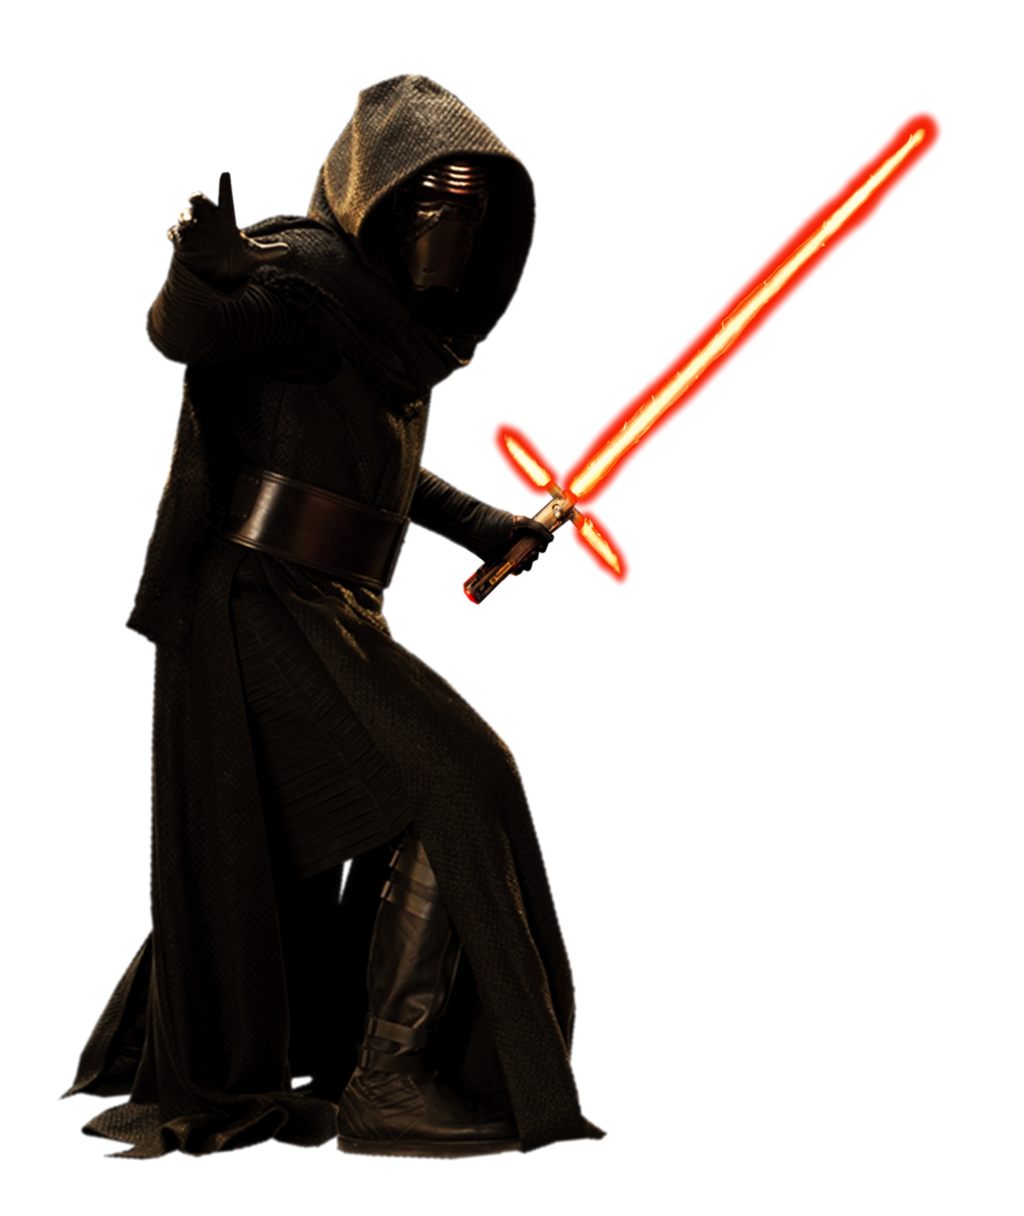 PNG Kylo Ren (Star Wars, The Last Jedi, Force Awakens).